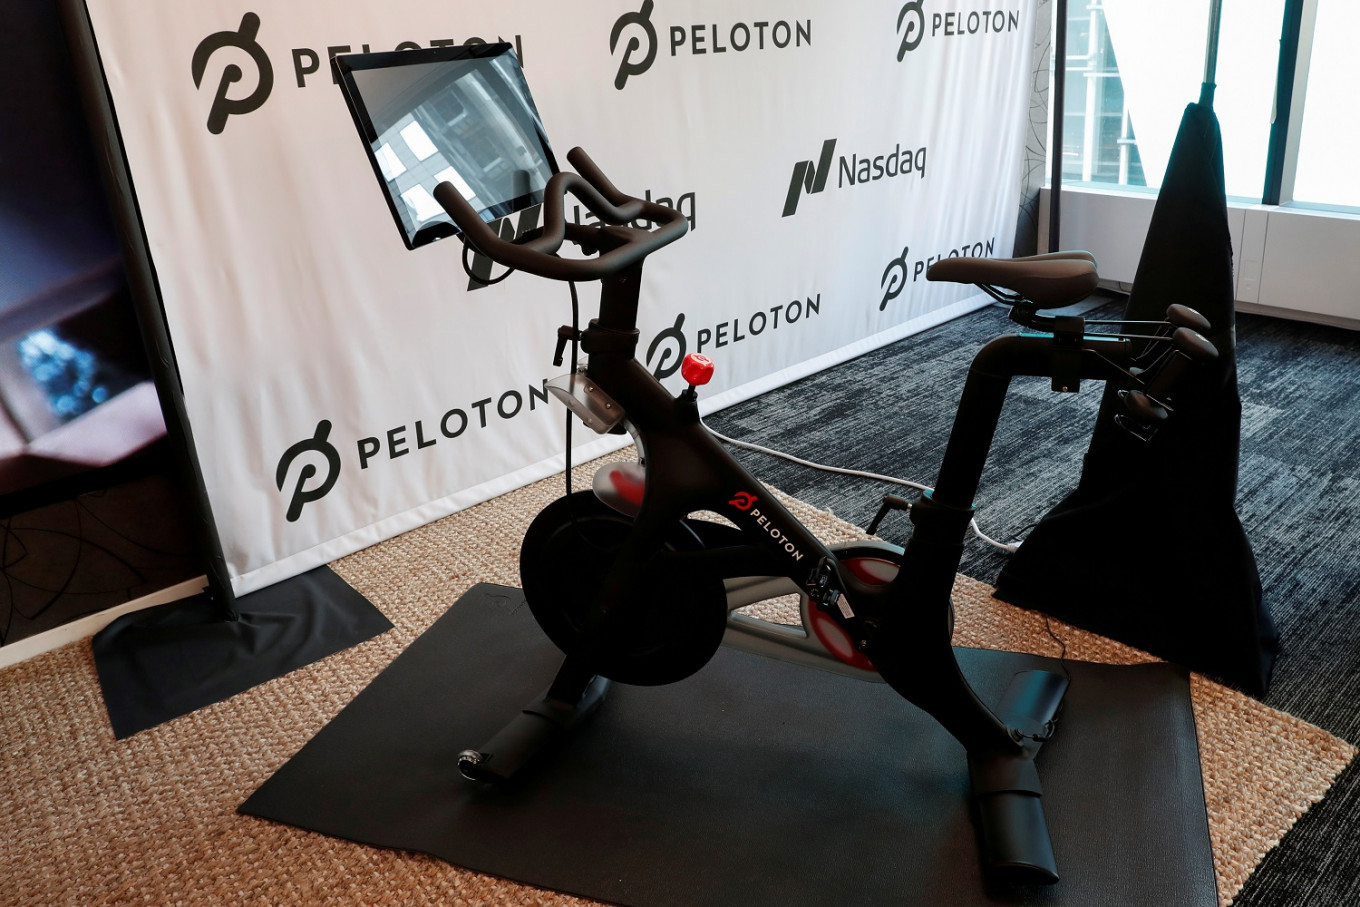 Indoor cycling apps get leg-up from coronavirus shutdown